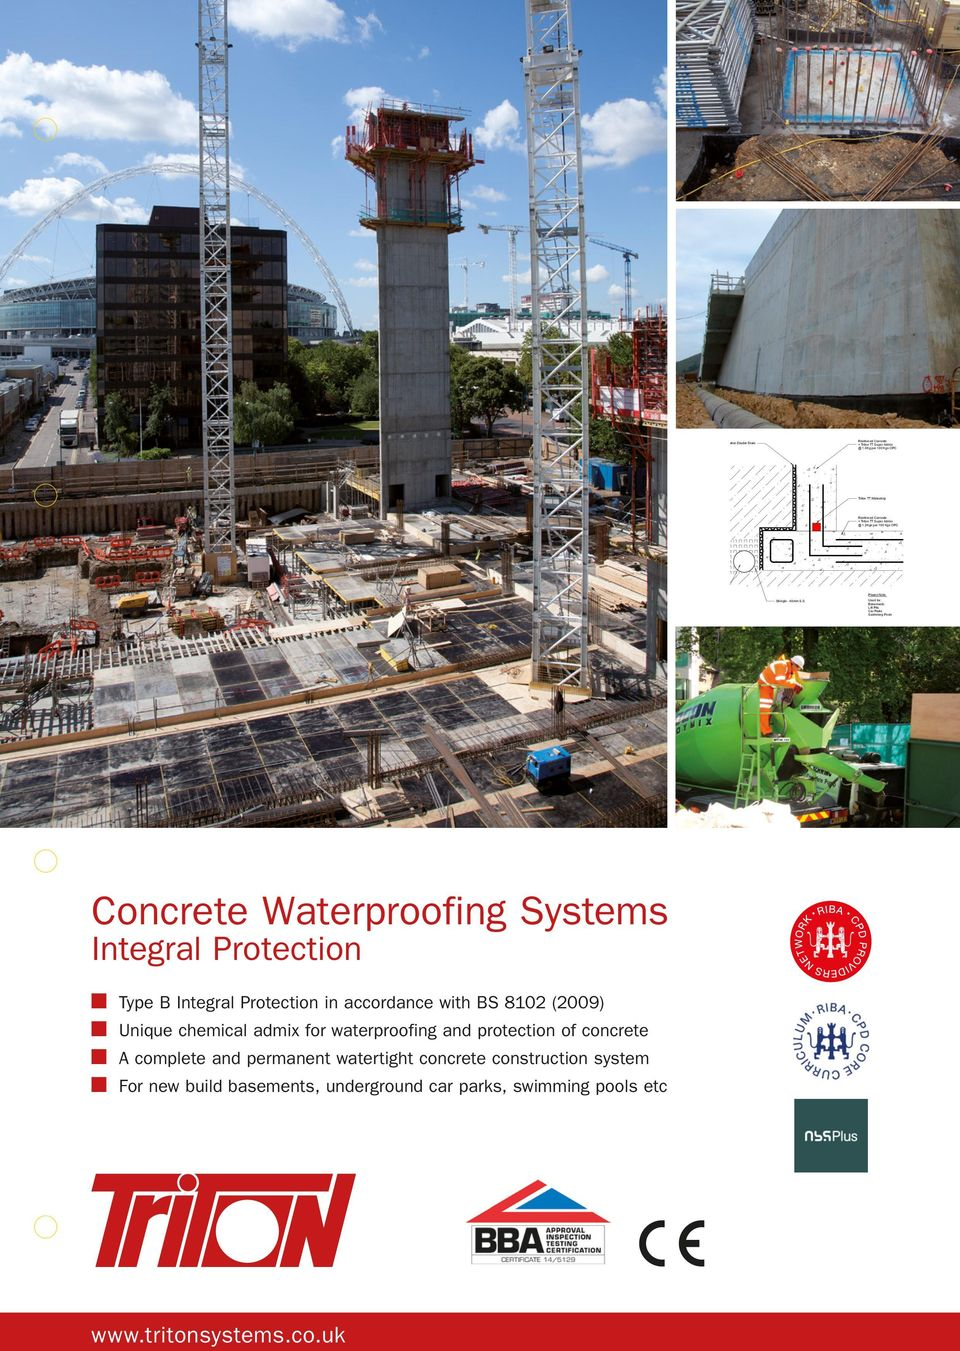 protection of concrete n A complete and permanent watertight concrete